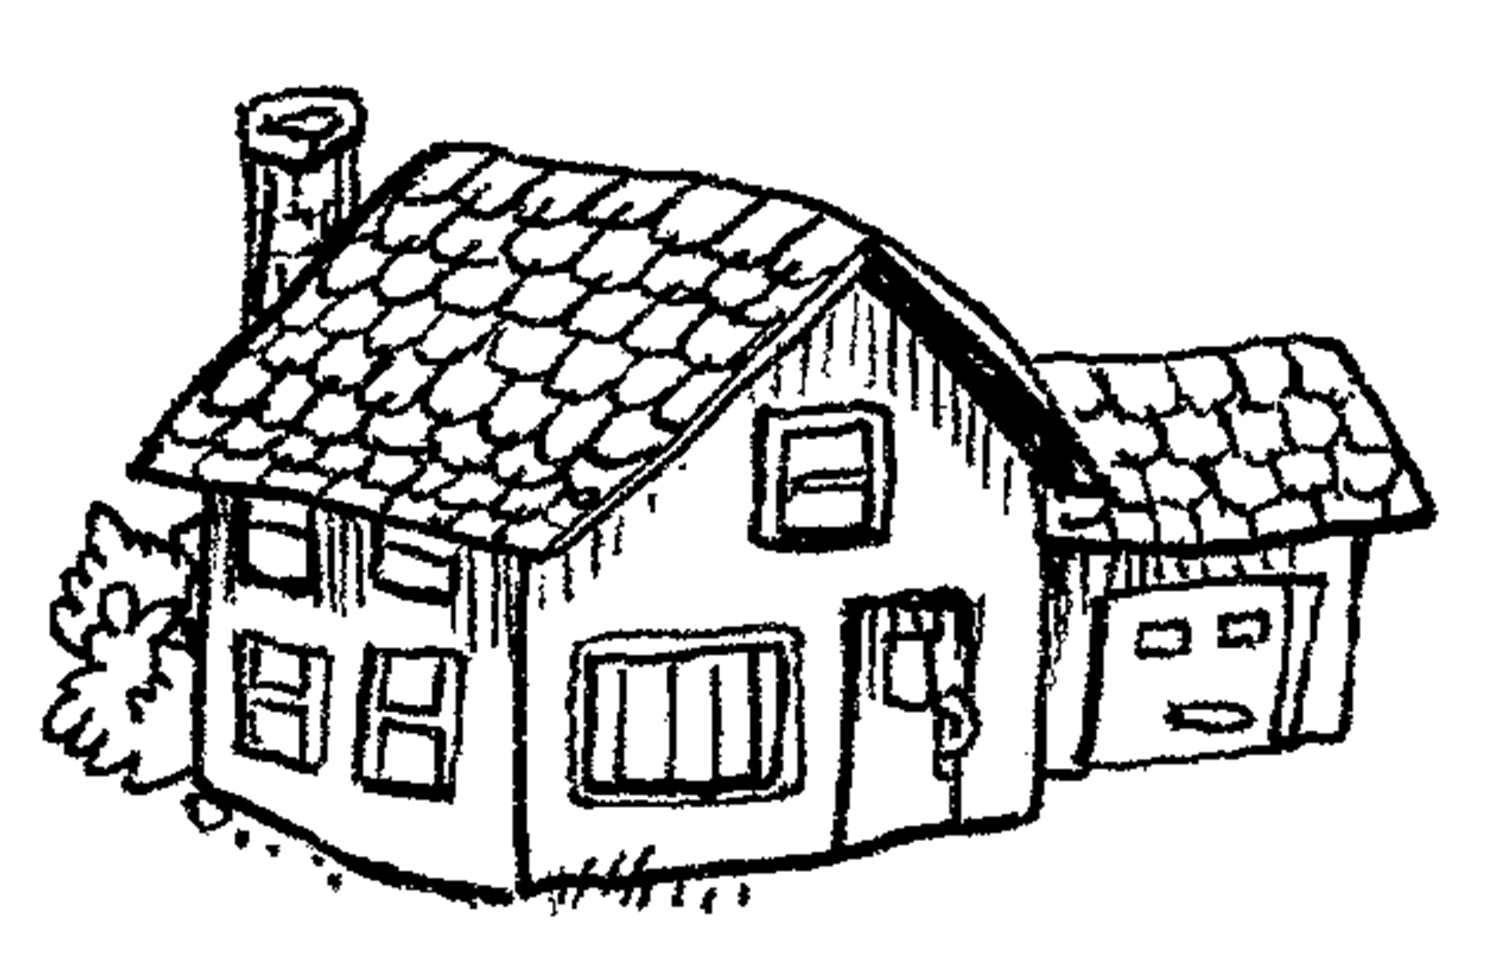 school house coloring sheet school house coloring pages getcoloringpagescom sketch sheet coloring school house